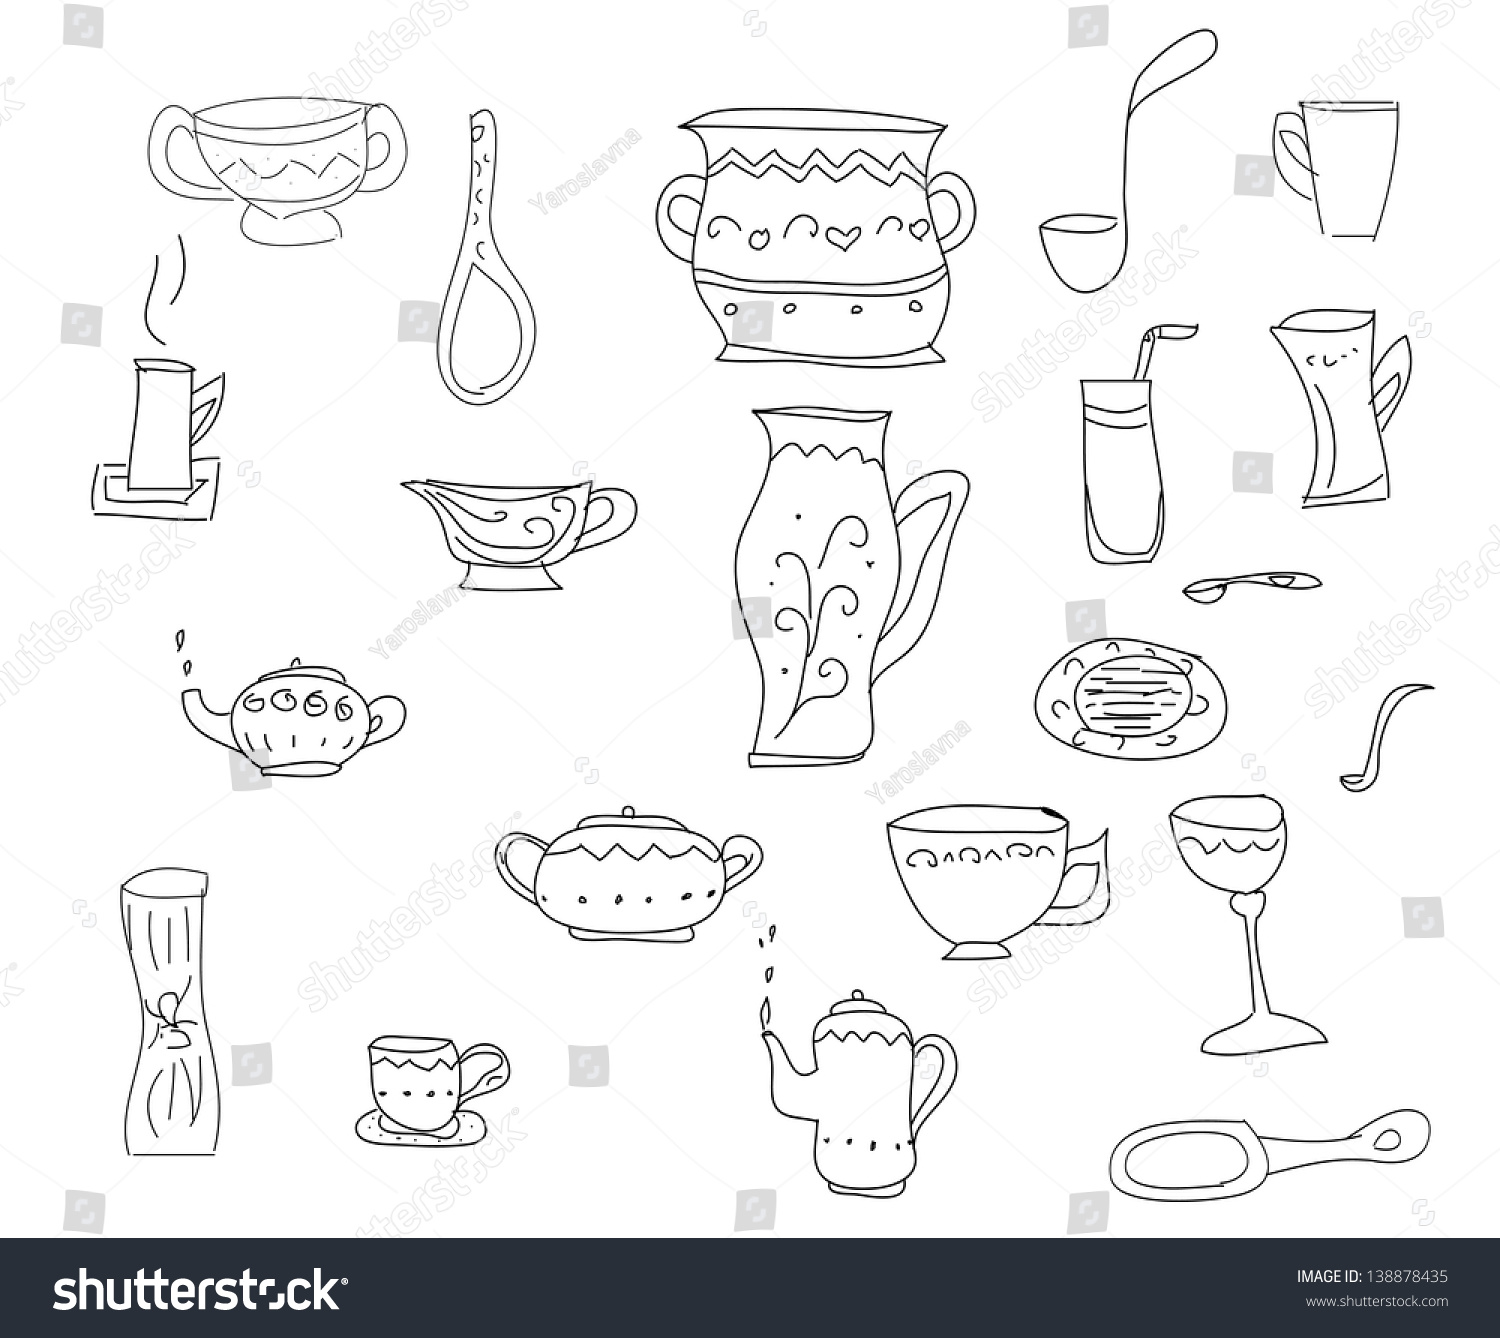 Big Set Of Kitchen Tools, Sketch In Simple Black Lines